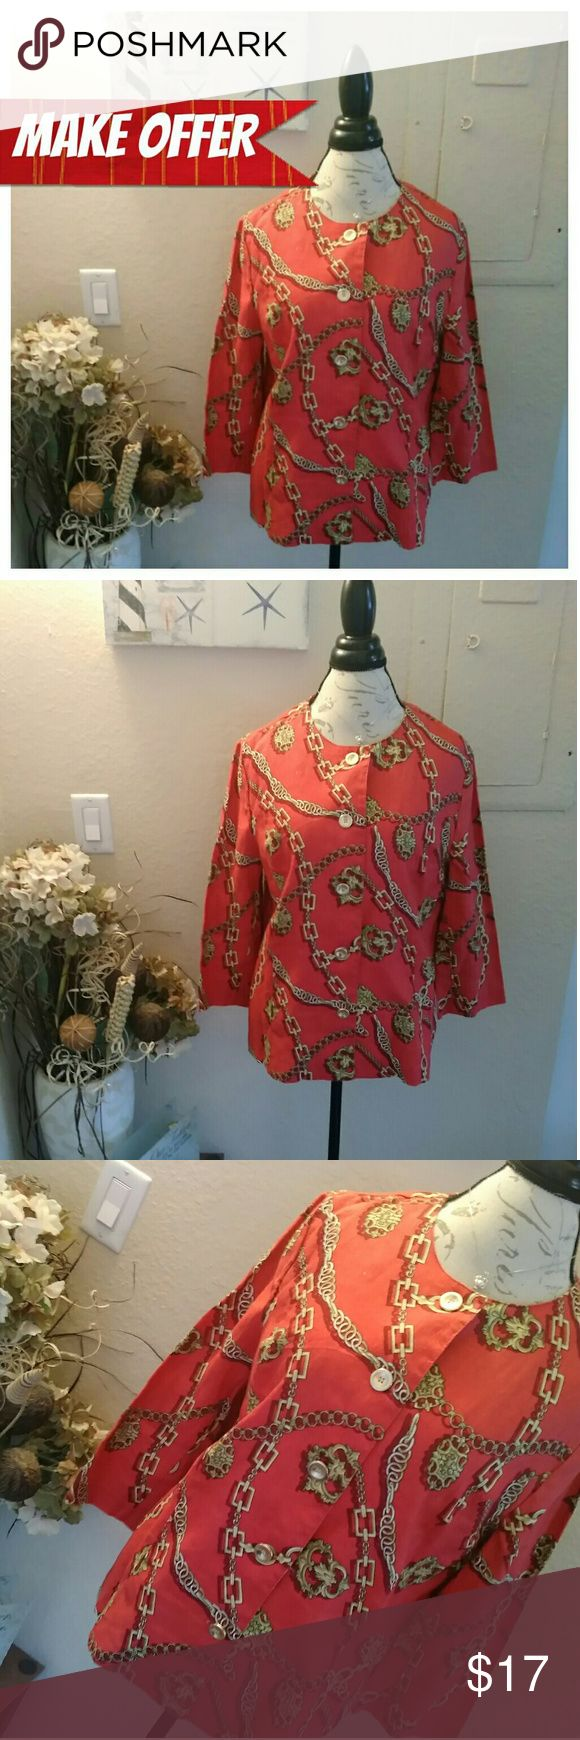 Red & Gold Chains Design Long Sleeve Size 14 *ASK FOR DISCOUNTED SHIPPING!*  Condition: NWOT Brand: JM Collection Size: 14  Beautiful red long sleeve blouse with button down front.  Gold chain design all over the shirt  *BUNDLE TO SAVE! BUNDLE DISCOUNTS!* Tops